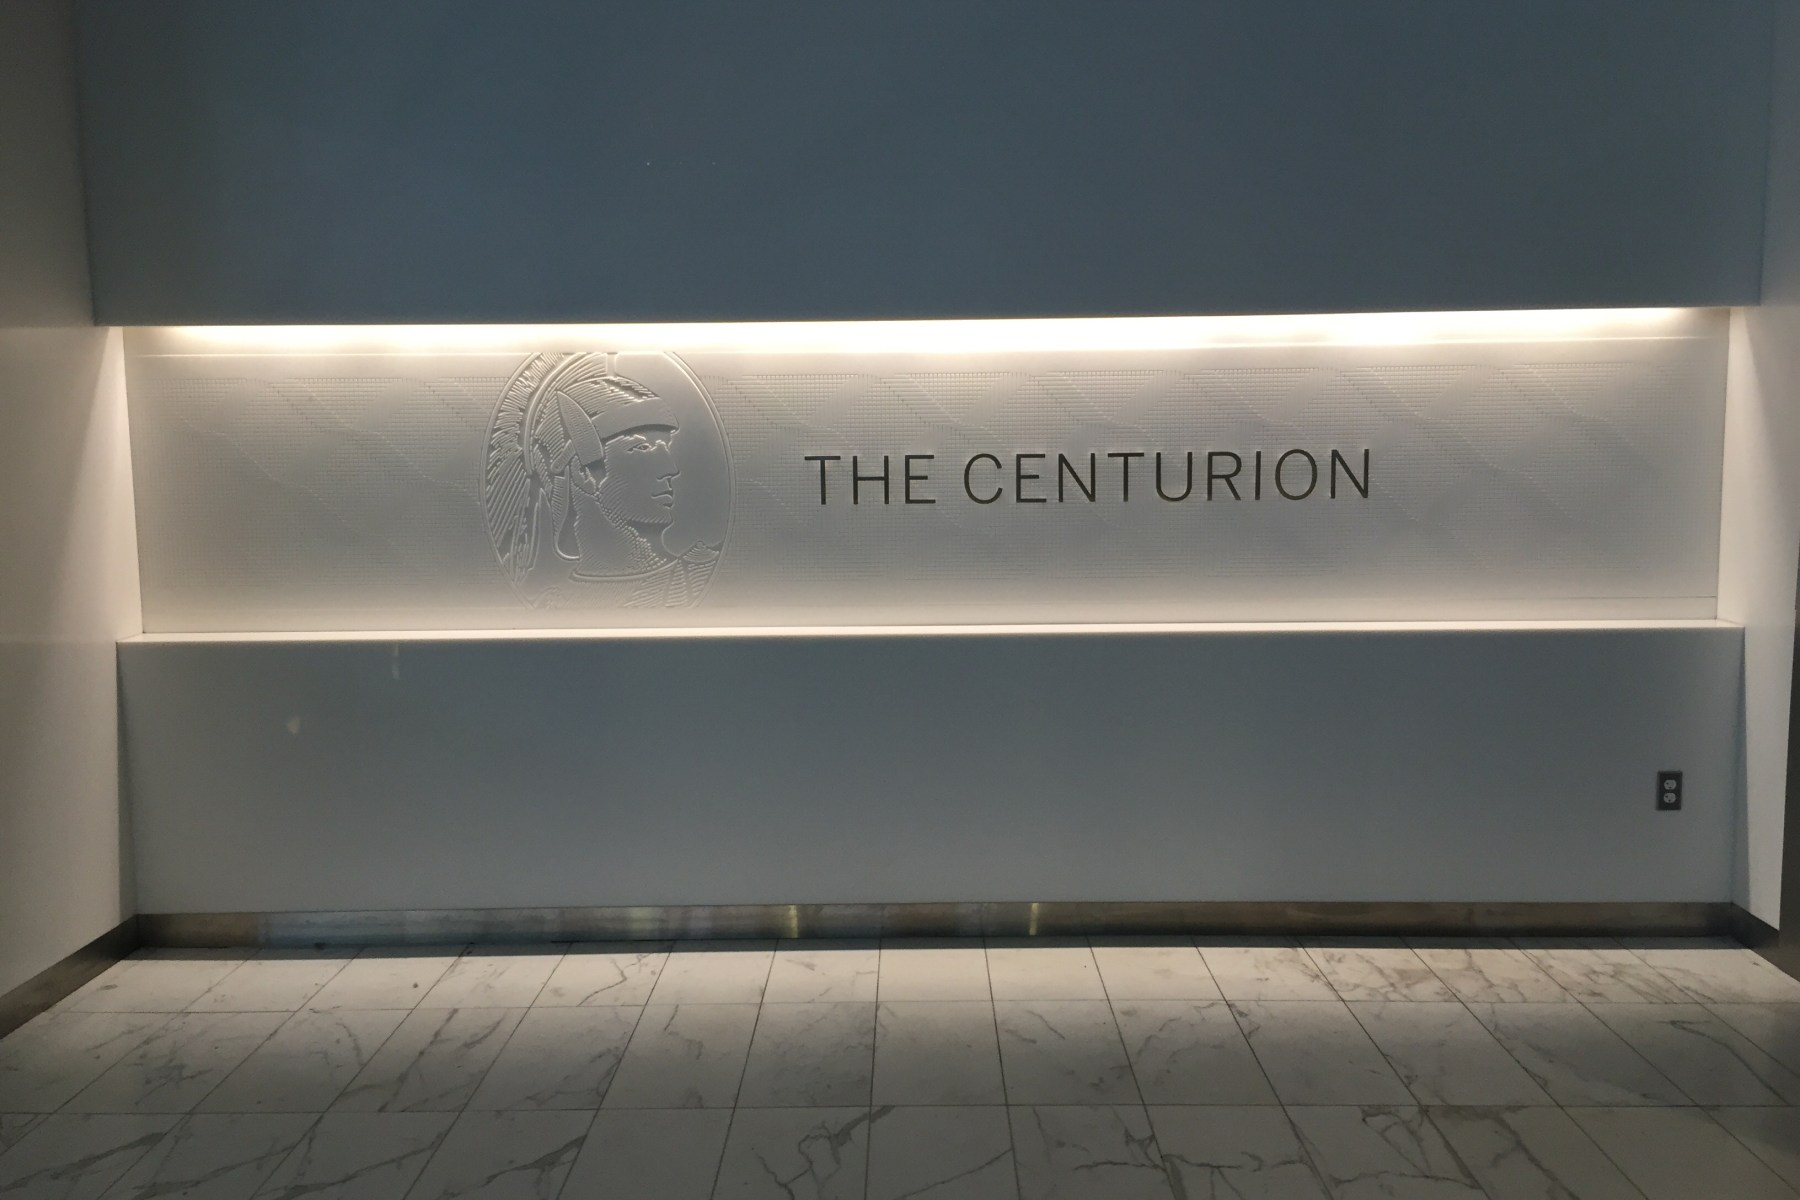 dfw dallas centurion lounge american express review